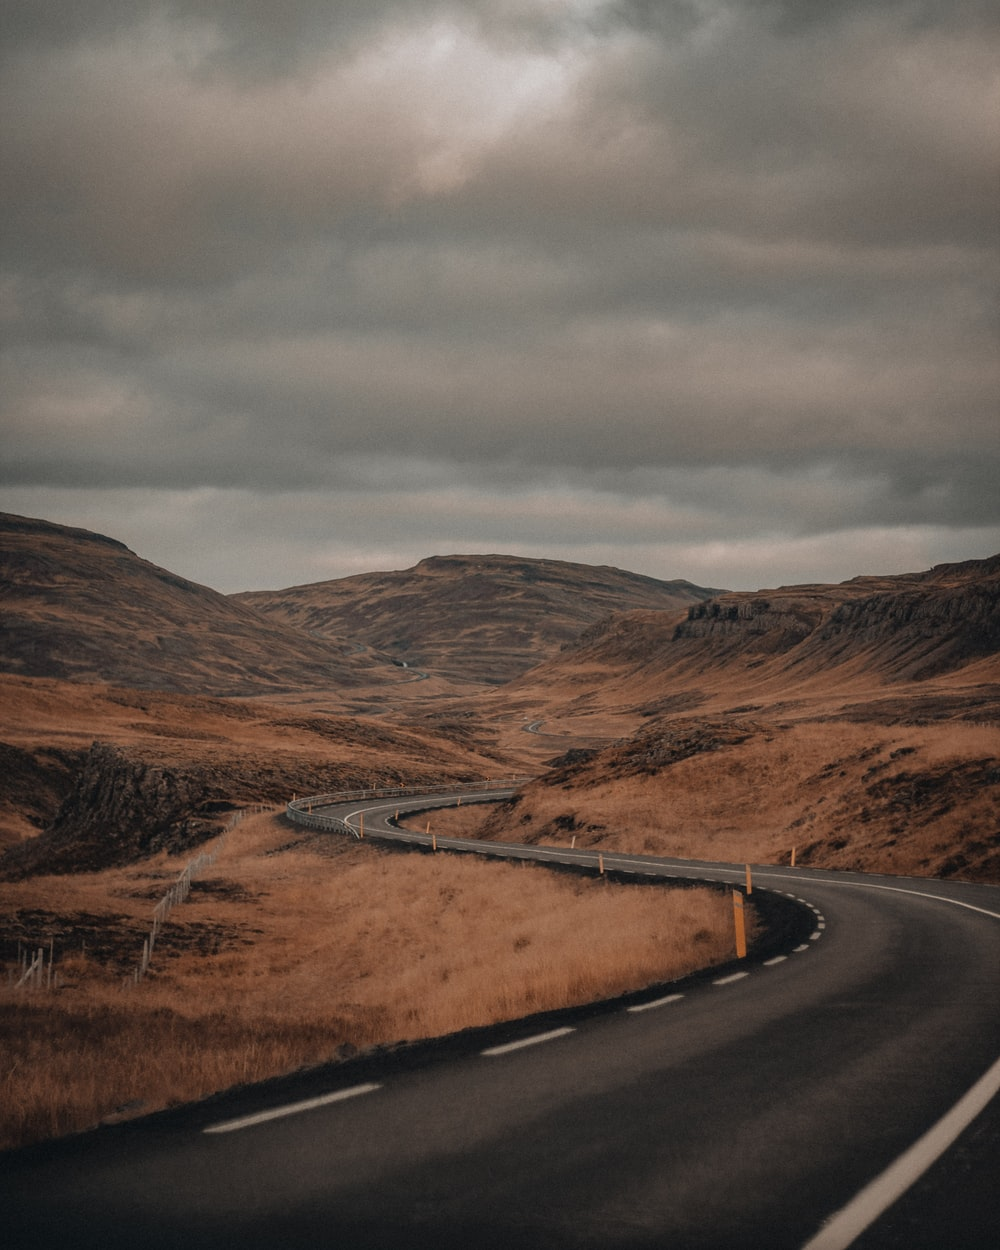 black asphalt road between brown mountains under gray cloudy sky during daytime